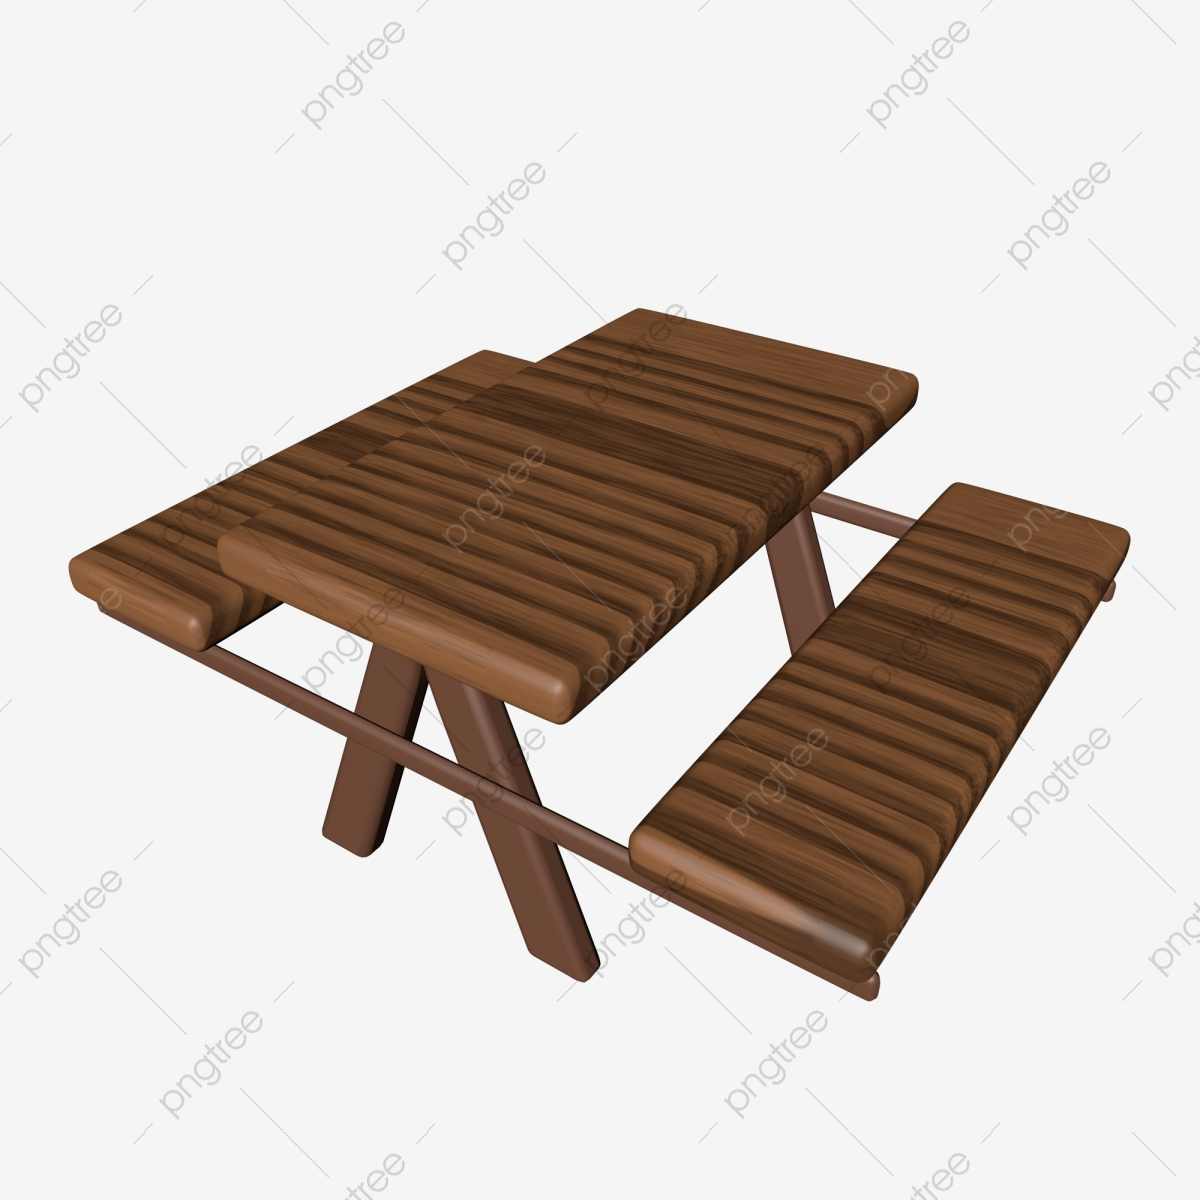 C4d Outdoor Restaurant Table And Chairs Fast Food